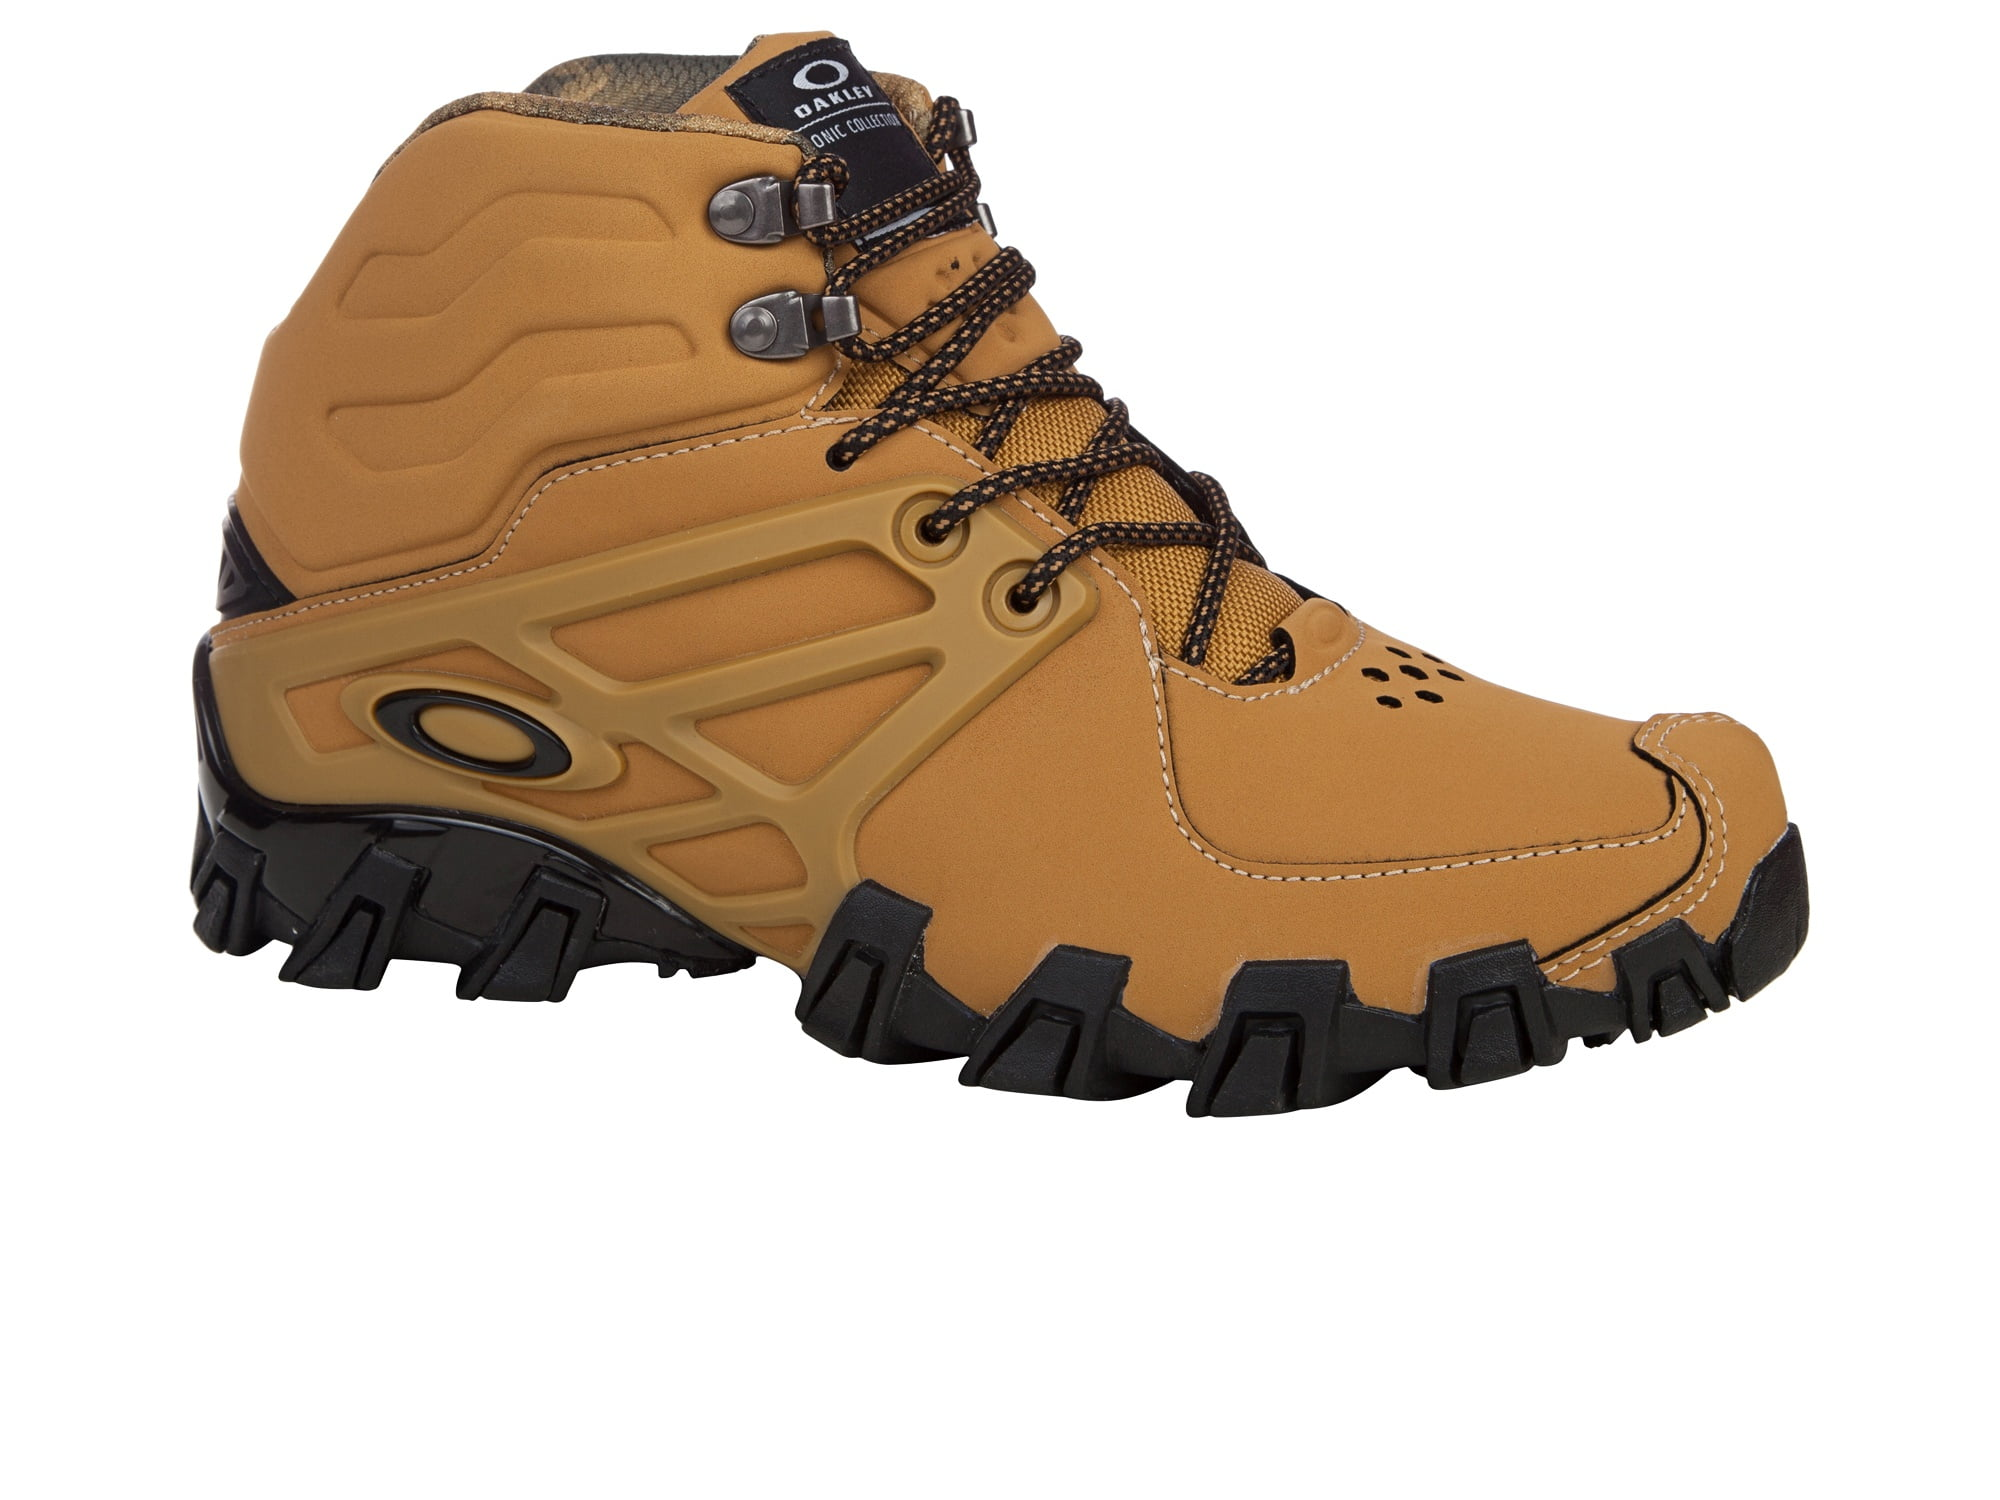 Bota oakley bunker mid copper canyon